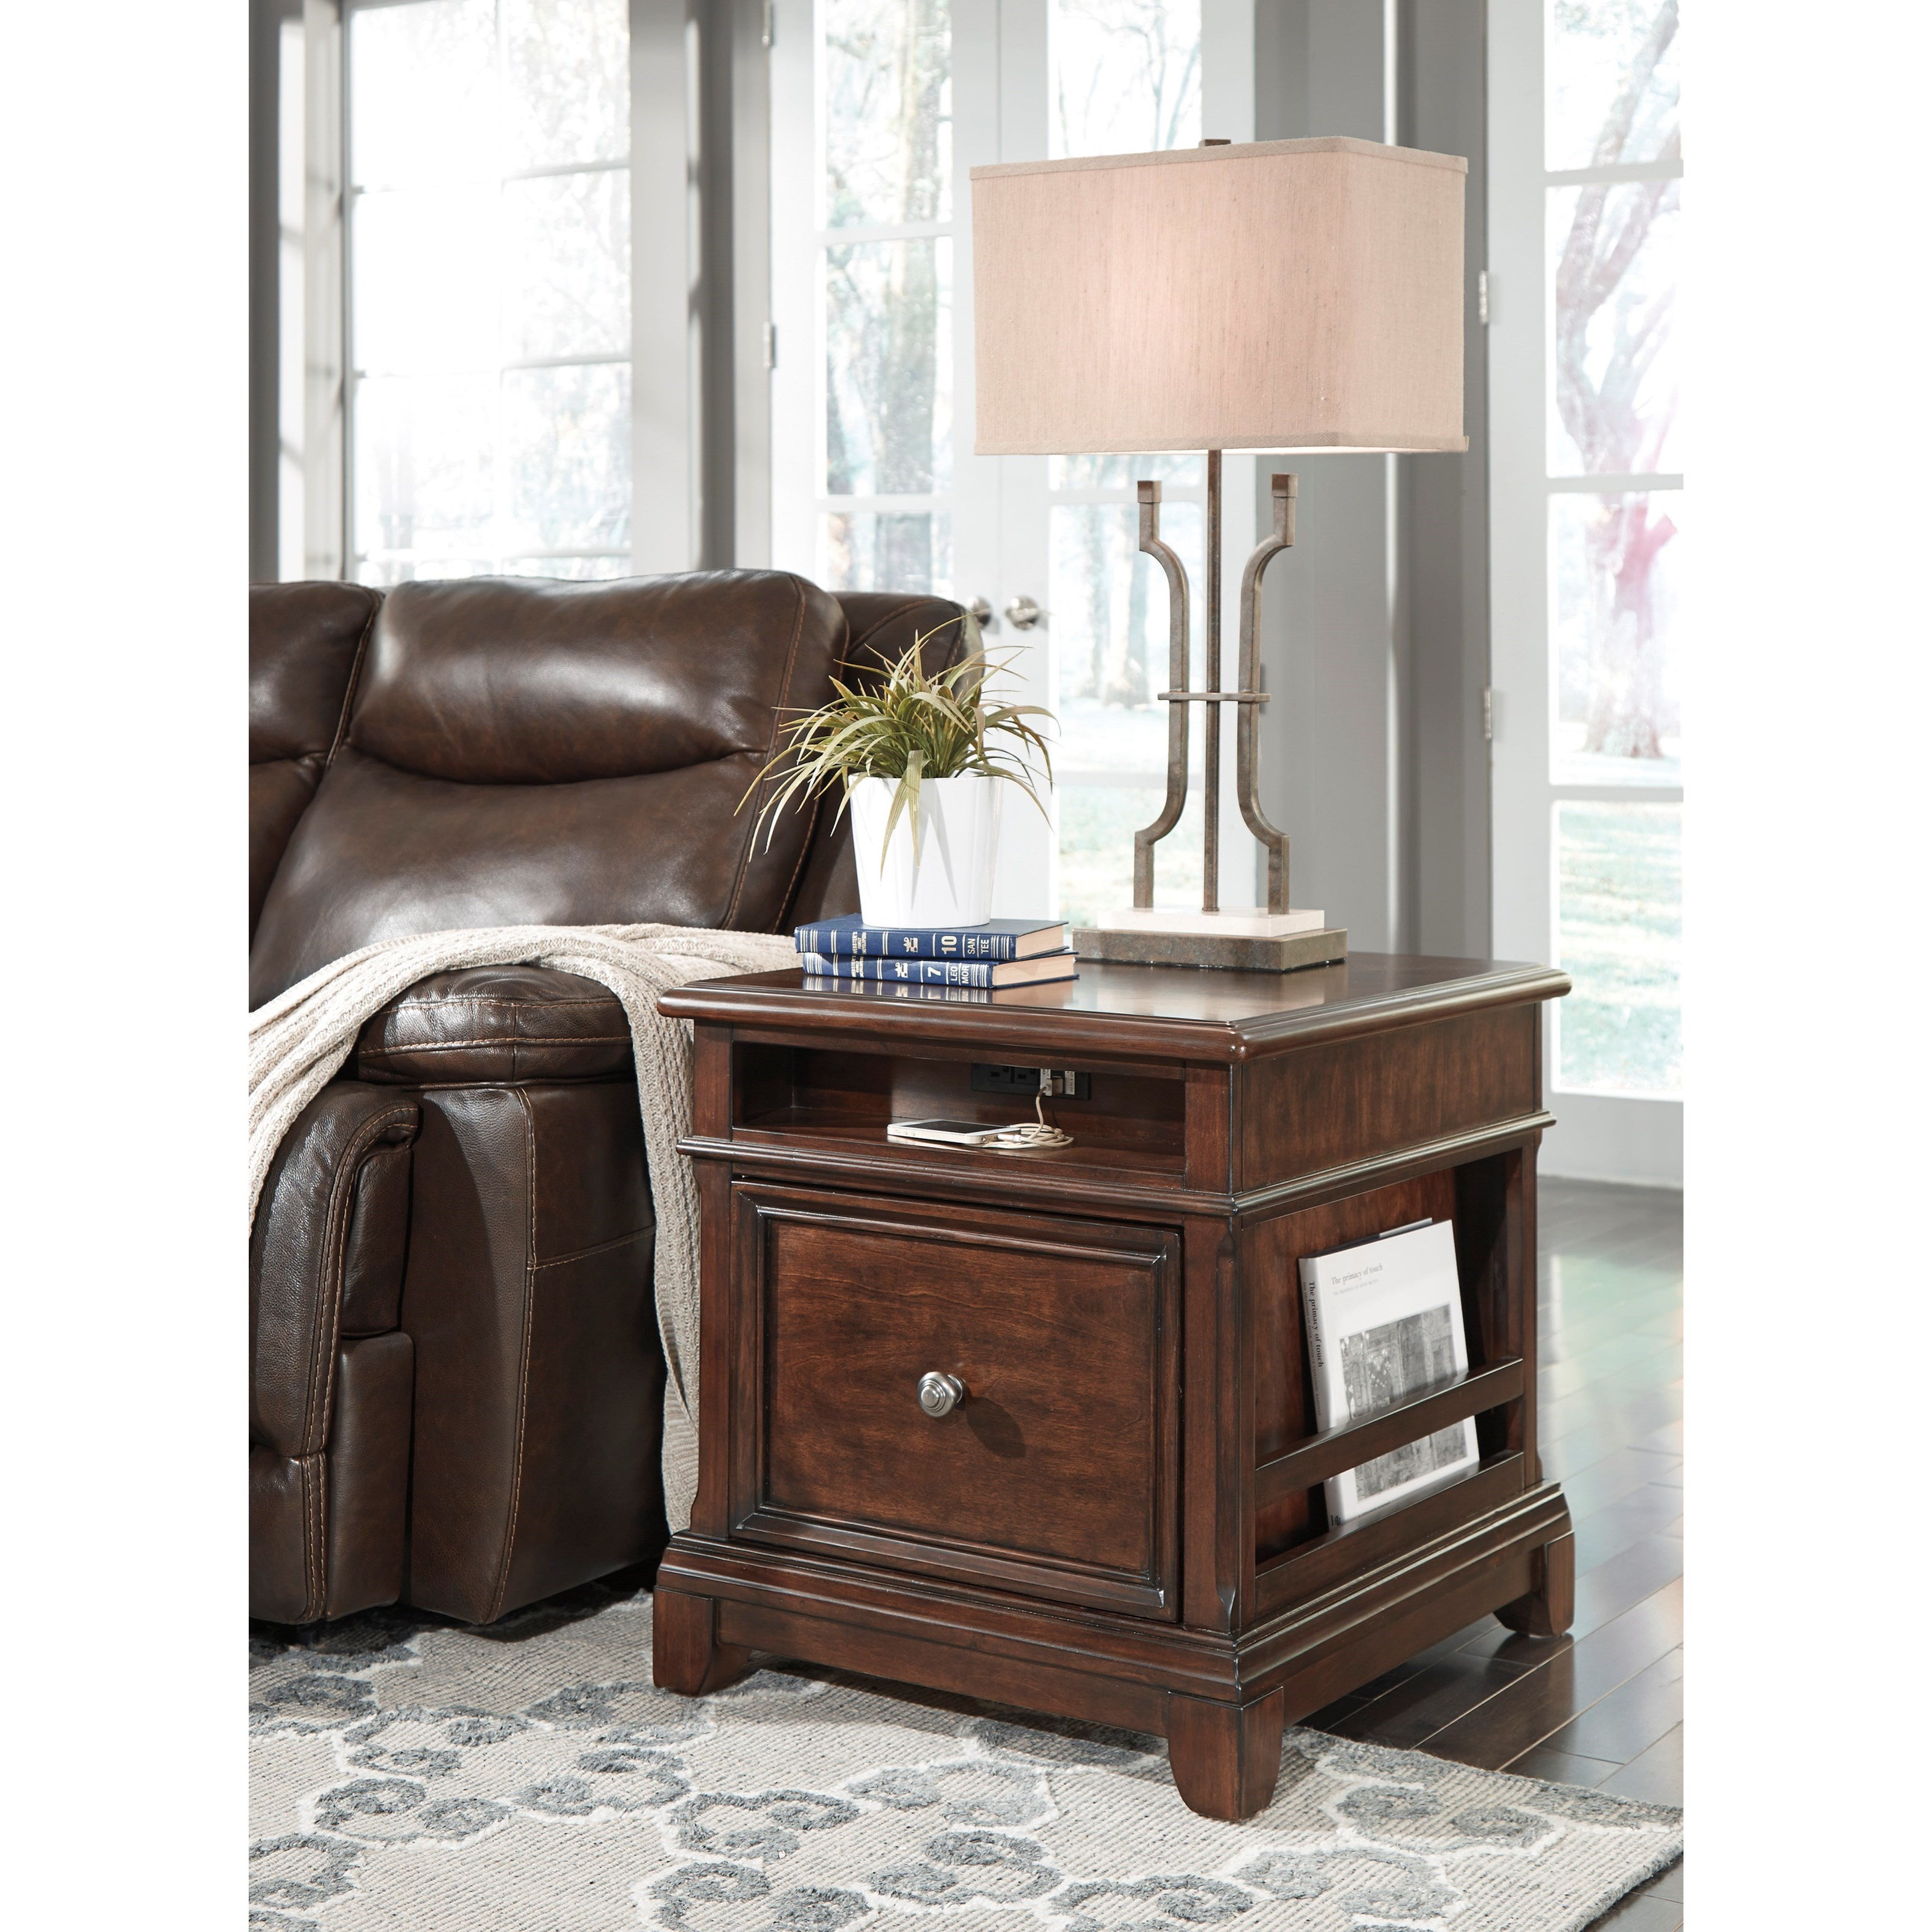 Attractive Marvelous Photograph Of End Table With File Drawer Power Outlet/USB  Charging And Magazine With